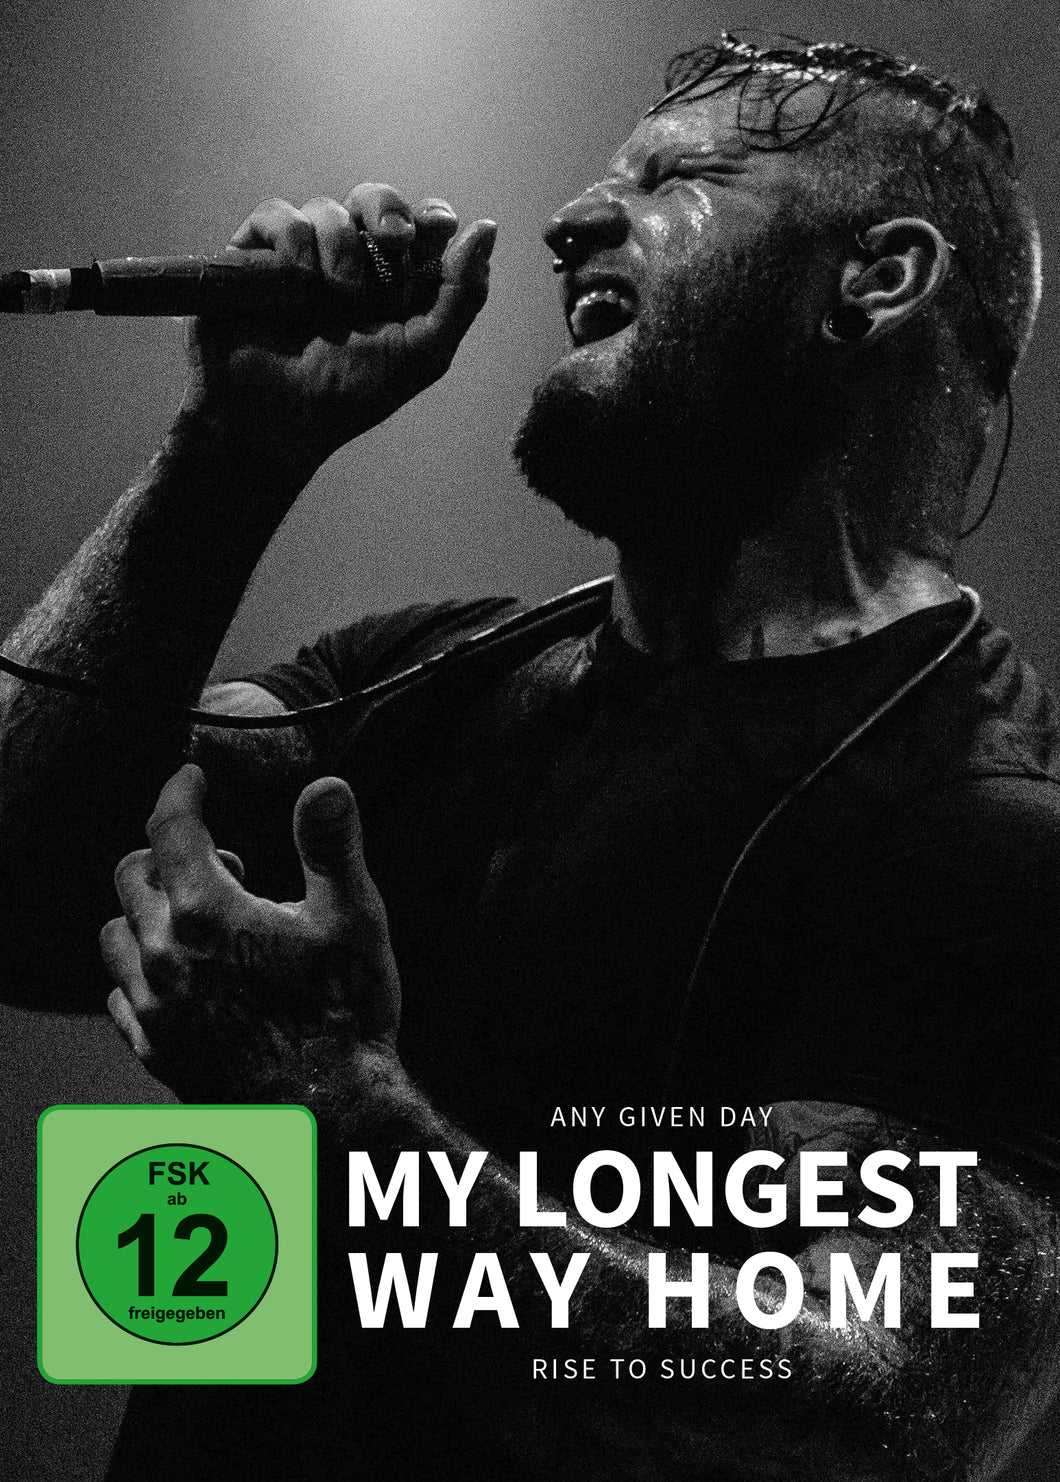 Any Given Day - My Longest Way Home - DVD (2016) - DVD - Redfield Records